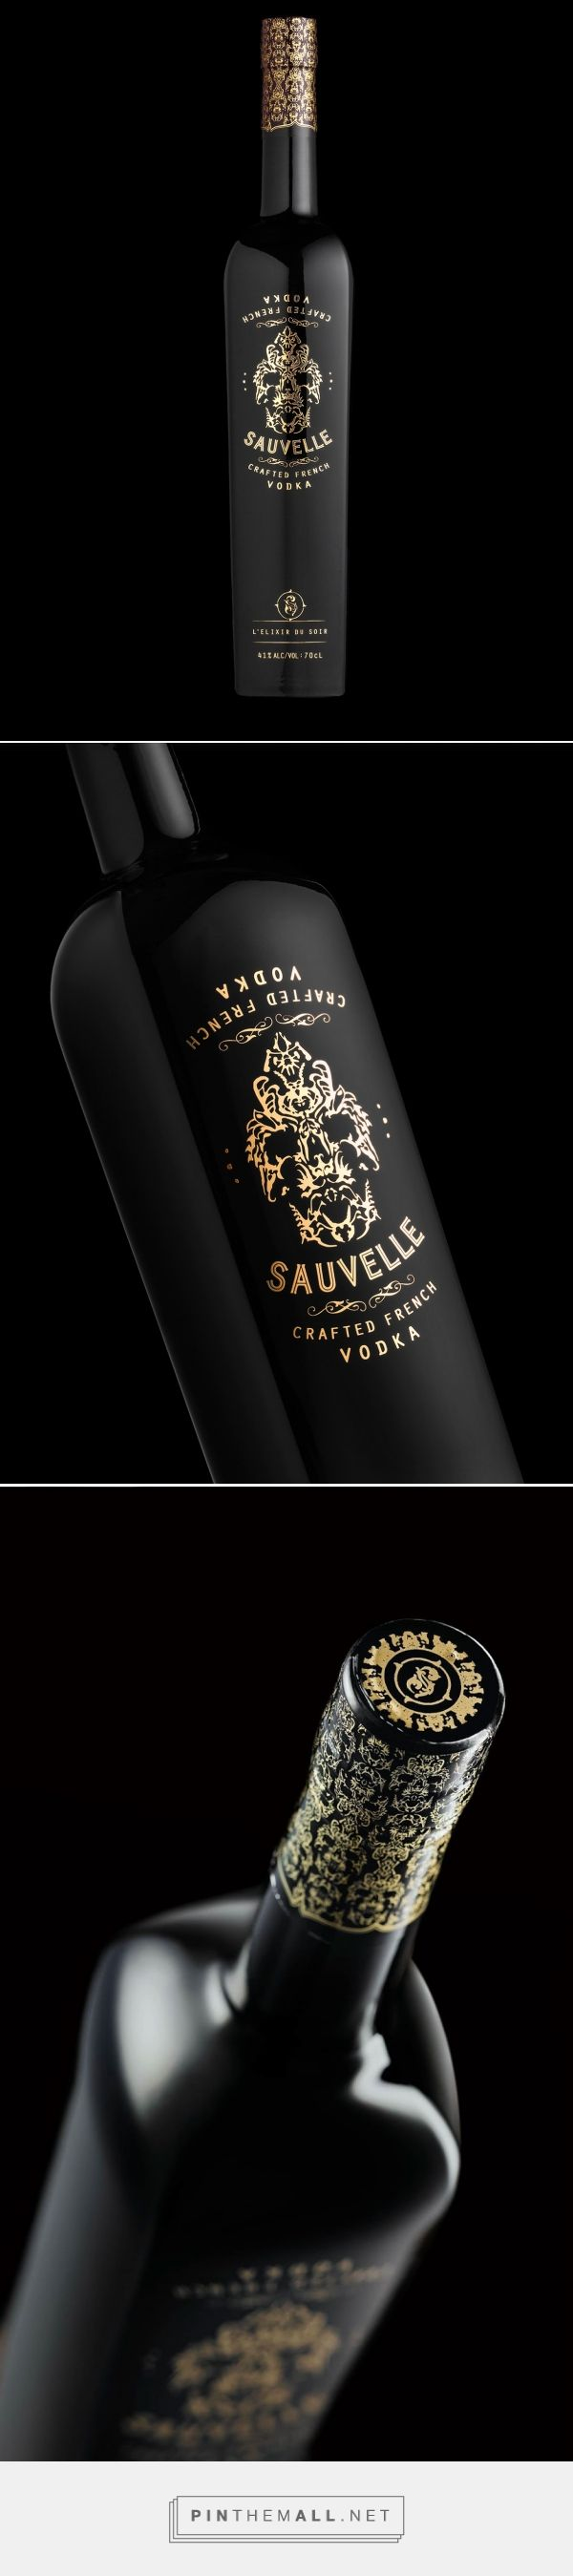 Sauvelle Vodka packaging designed by Stranger & Stranger (USA) - http://www.packagingoftheworld.com/2016/02/sauvelle.html